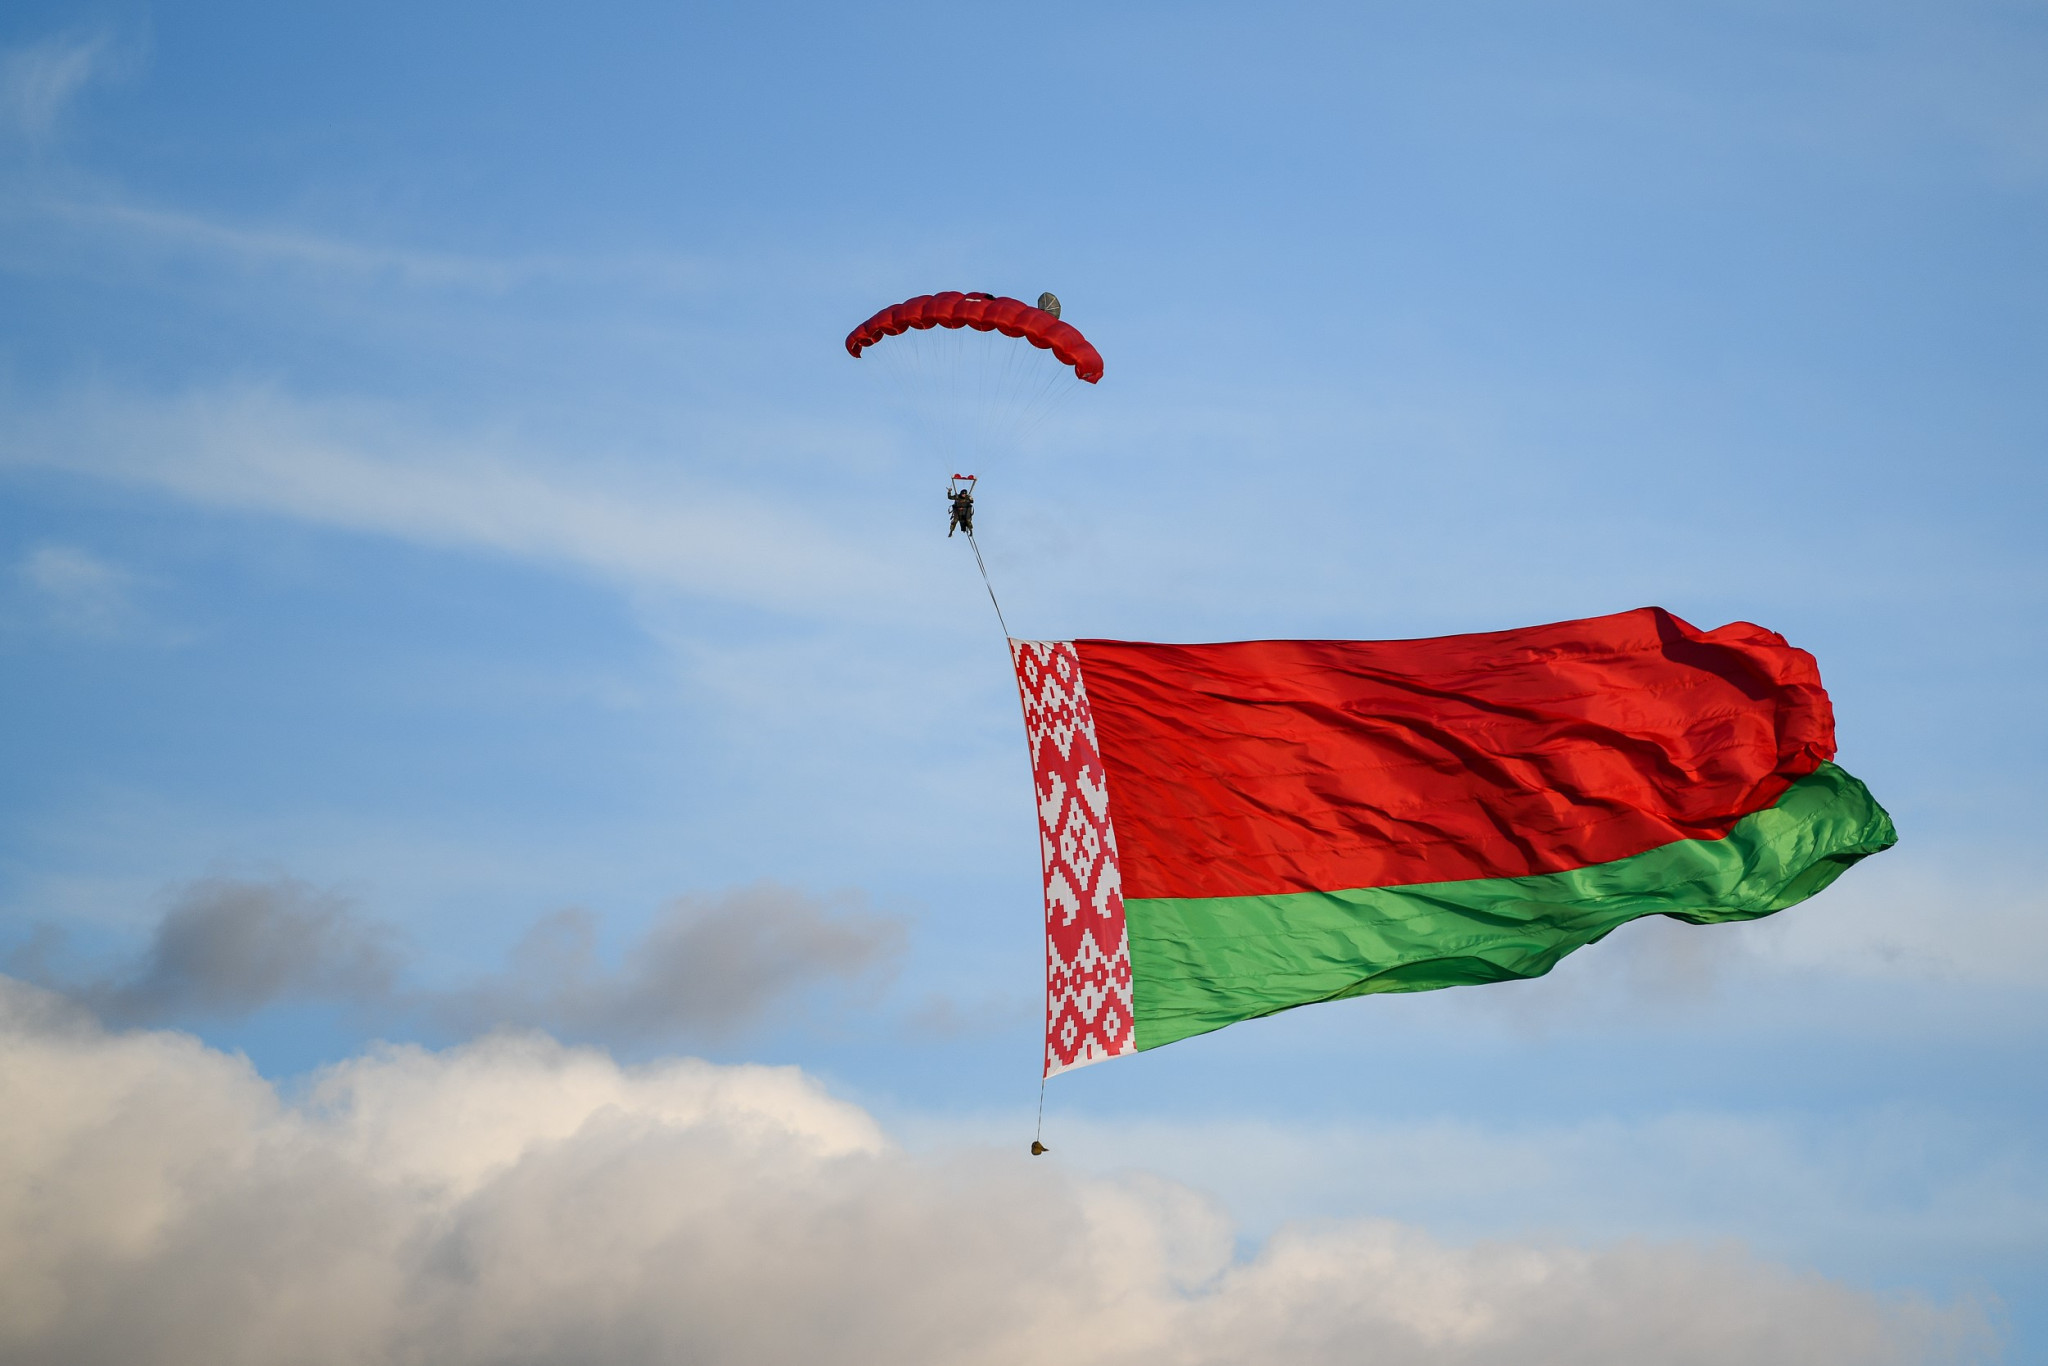 A skydiver displayed the Belarus flag as part of the